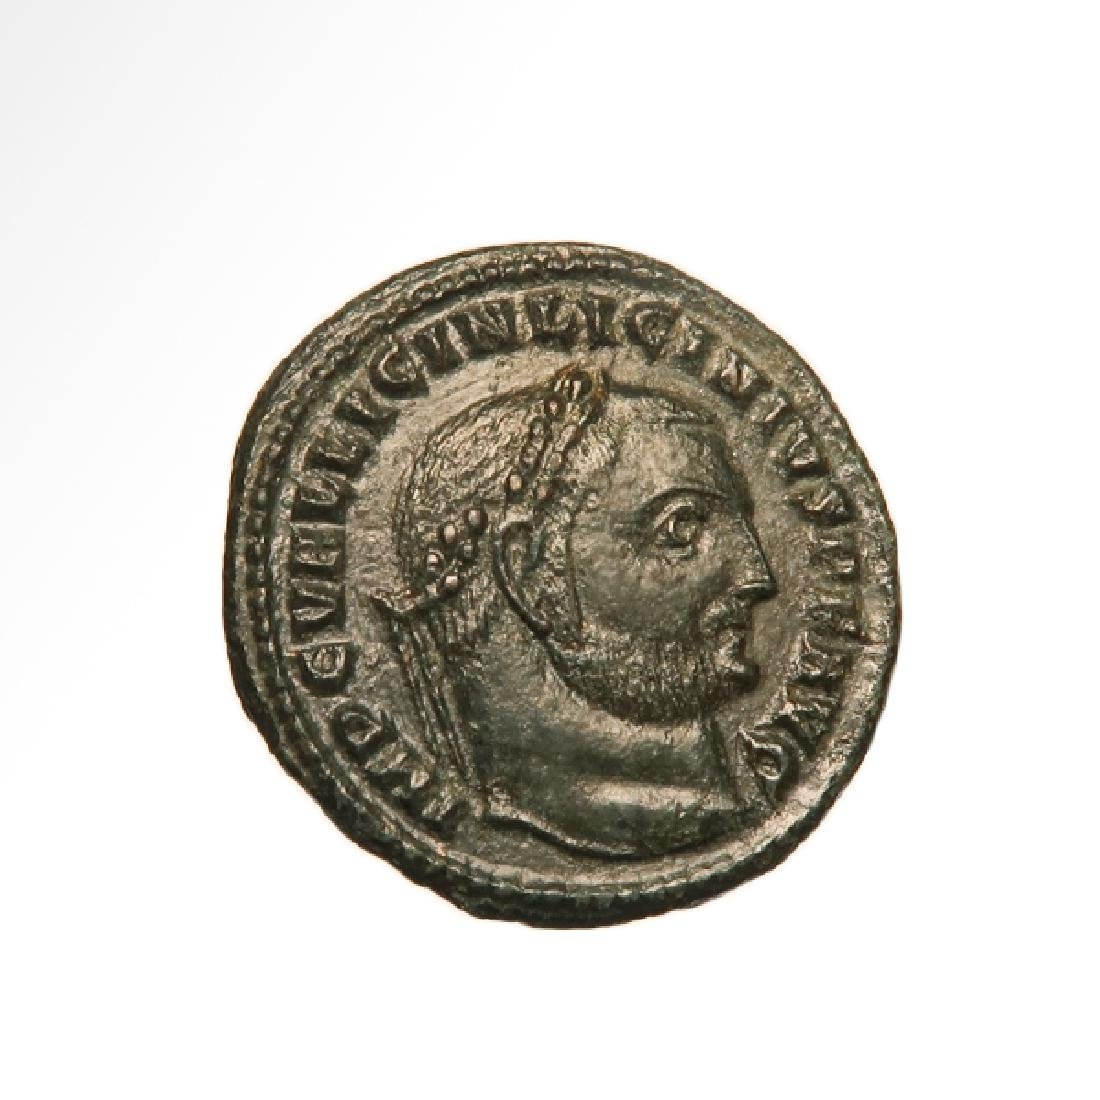 Roman Coin Follis of Emperor Licinius, c. 308-324 A.D.